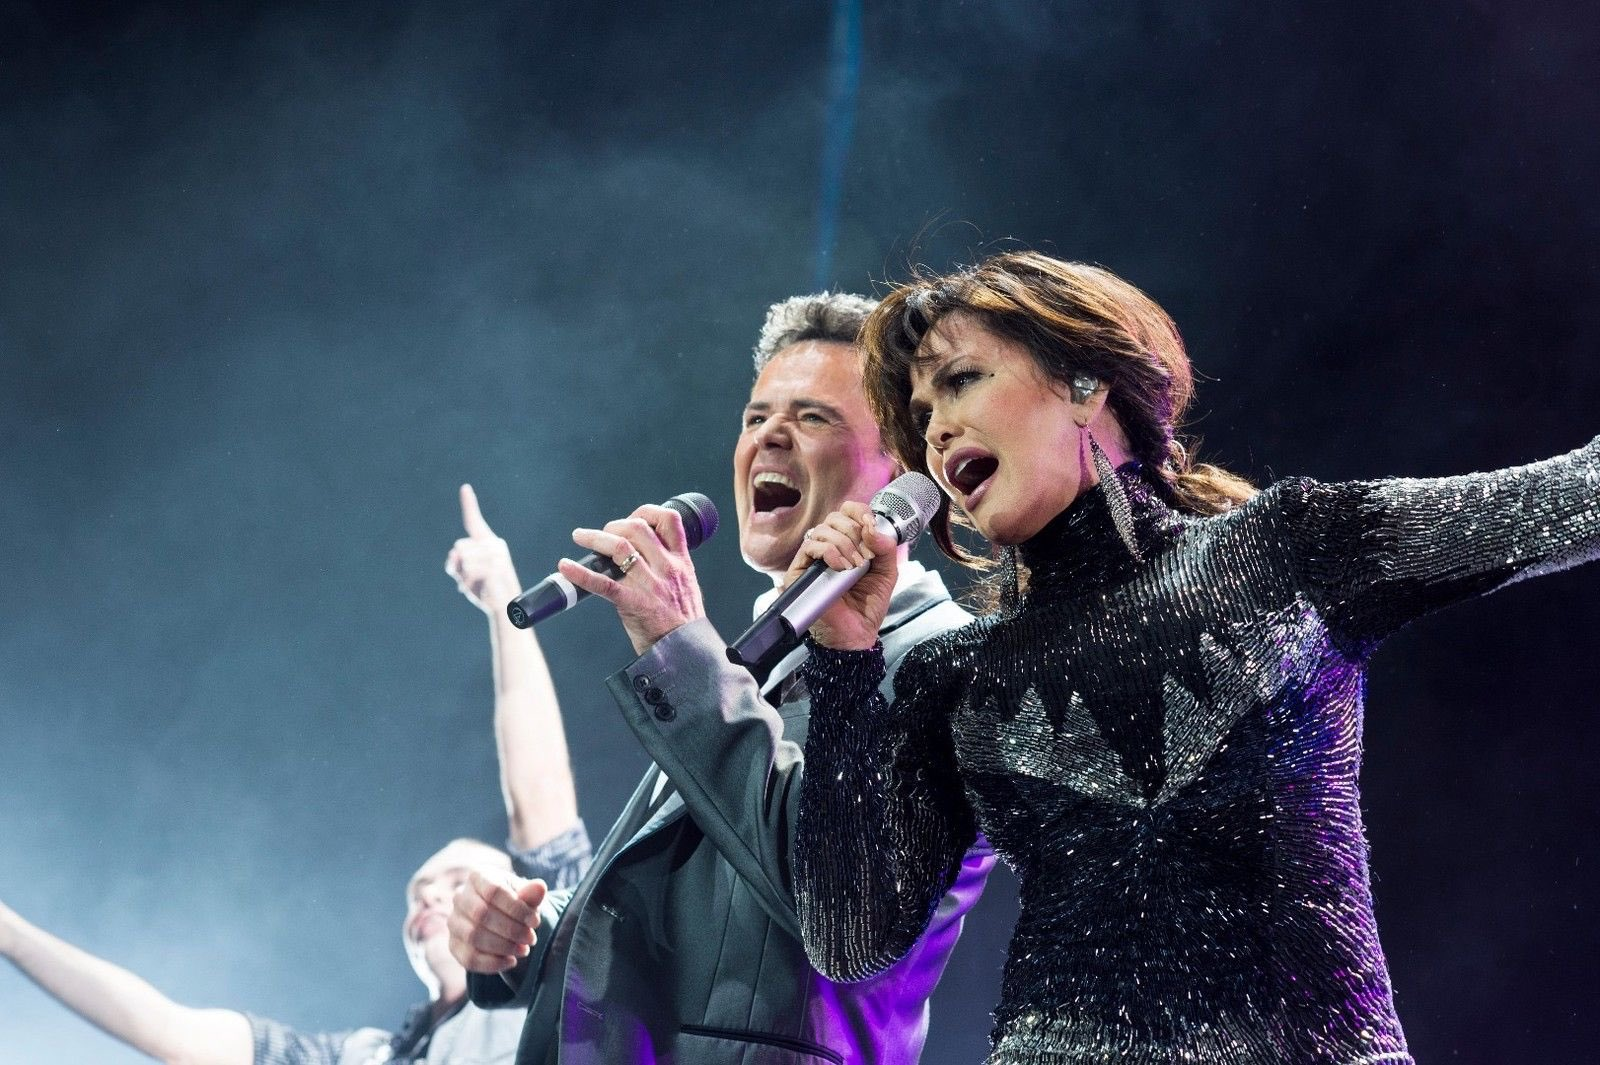 Keep an eye out for exciting #DonnyandMarie touring news to be announced this Monday! https://t.co/i6jenTrIUC